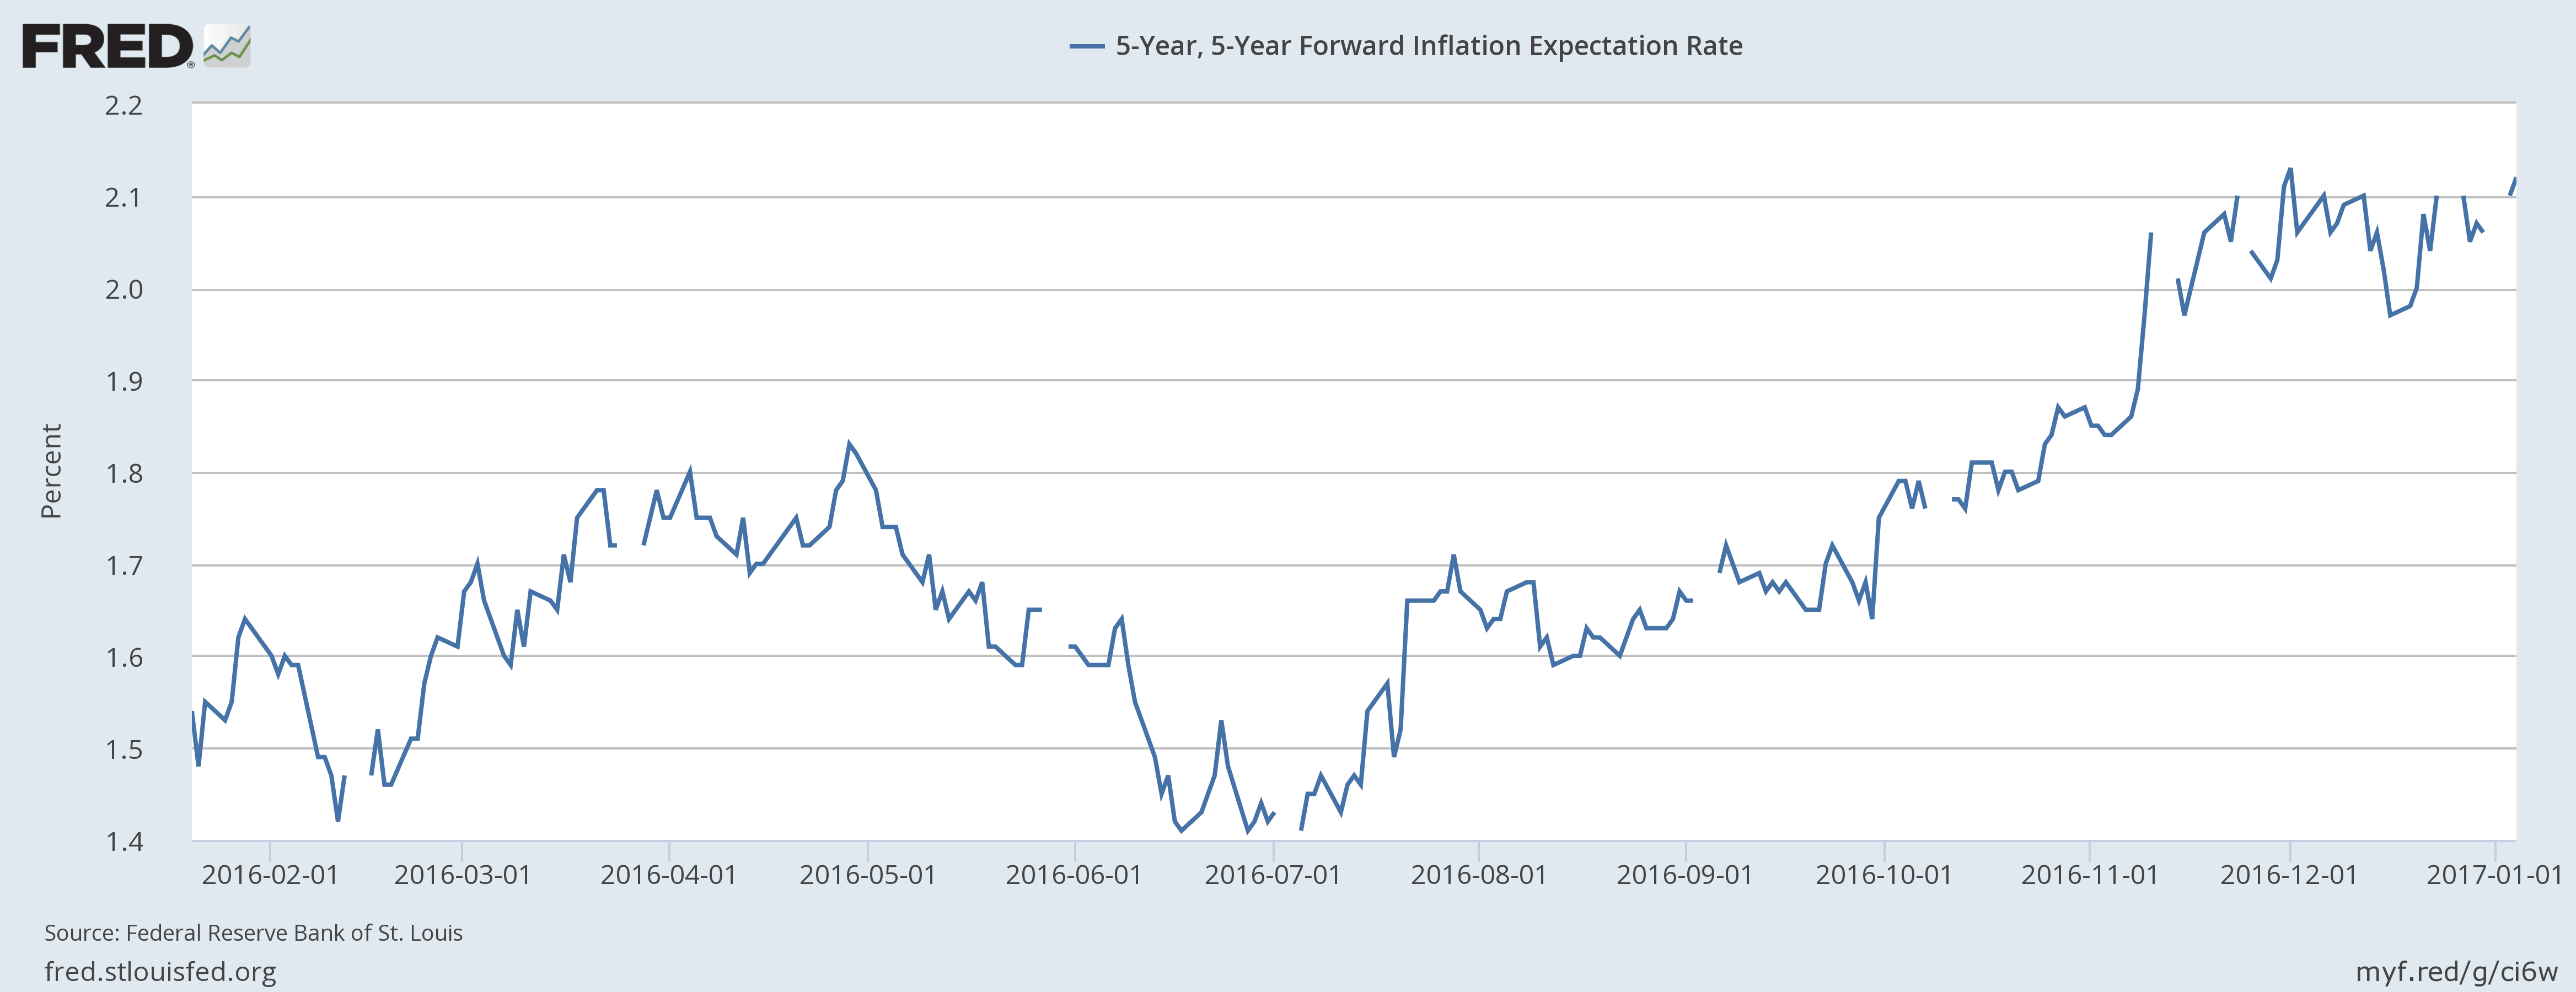 Inflation Expectations for the U.S. economy